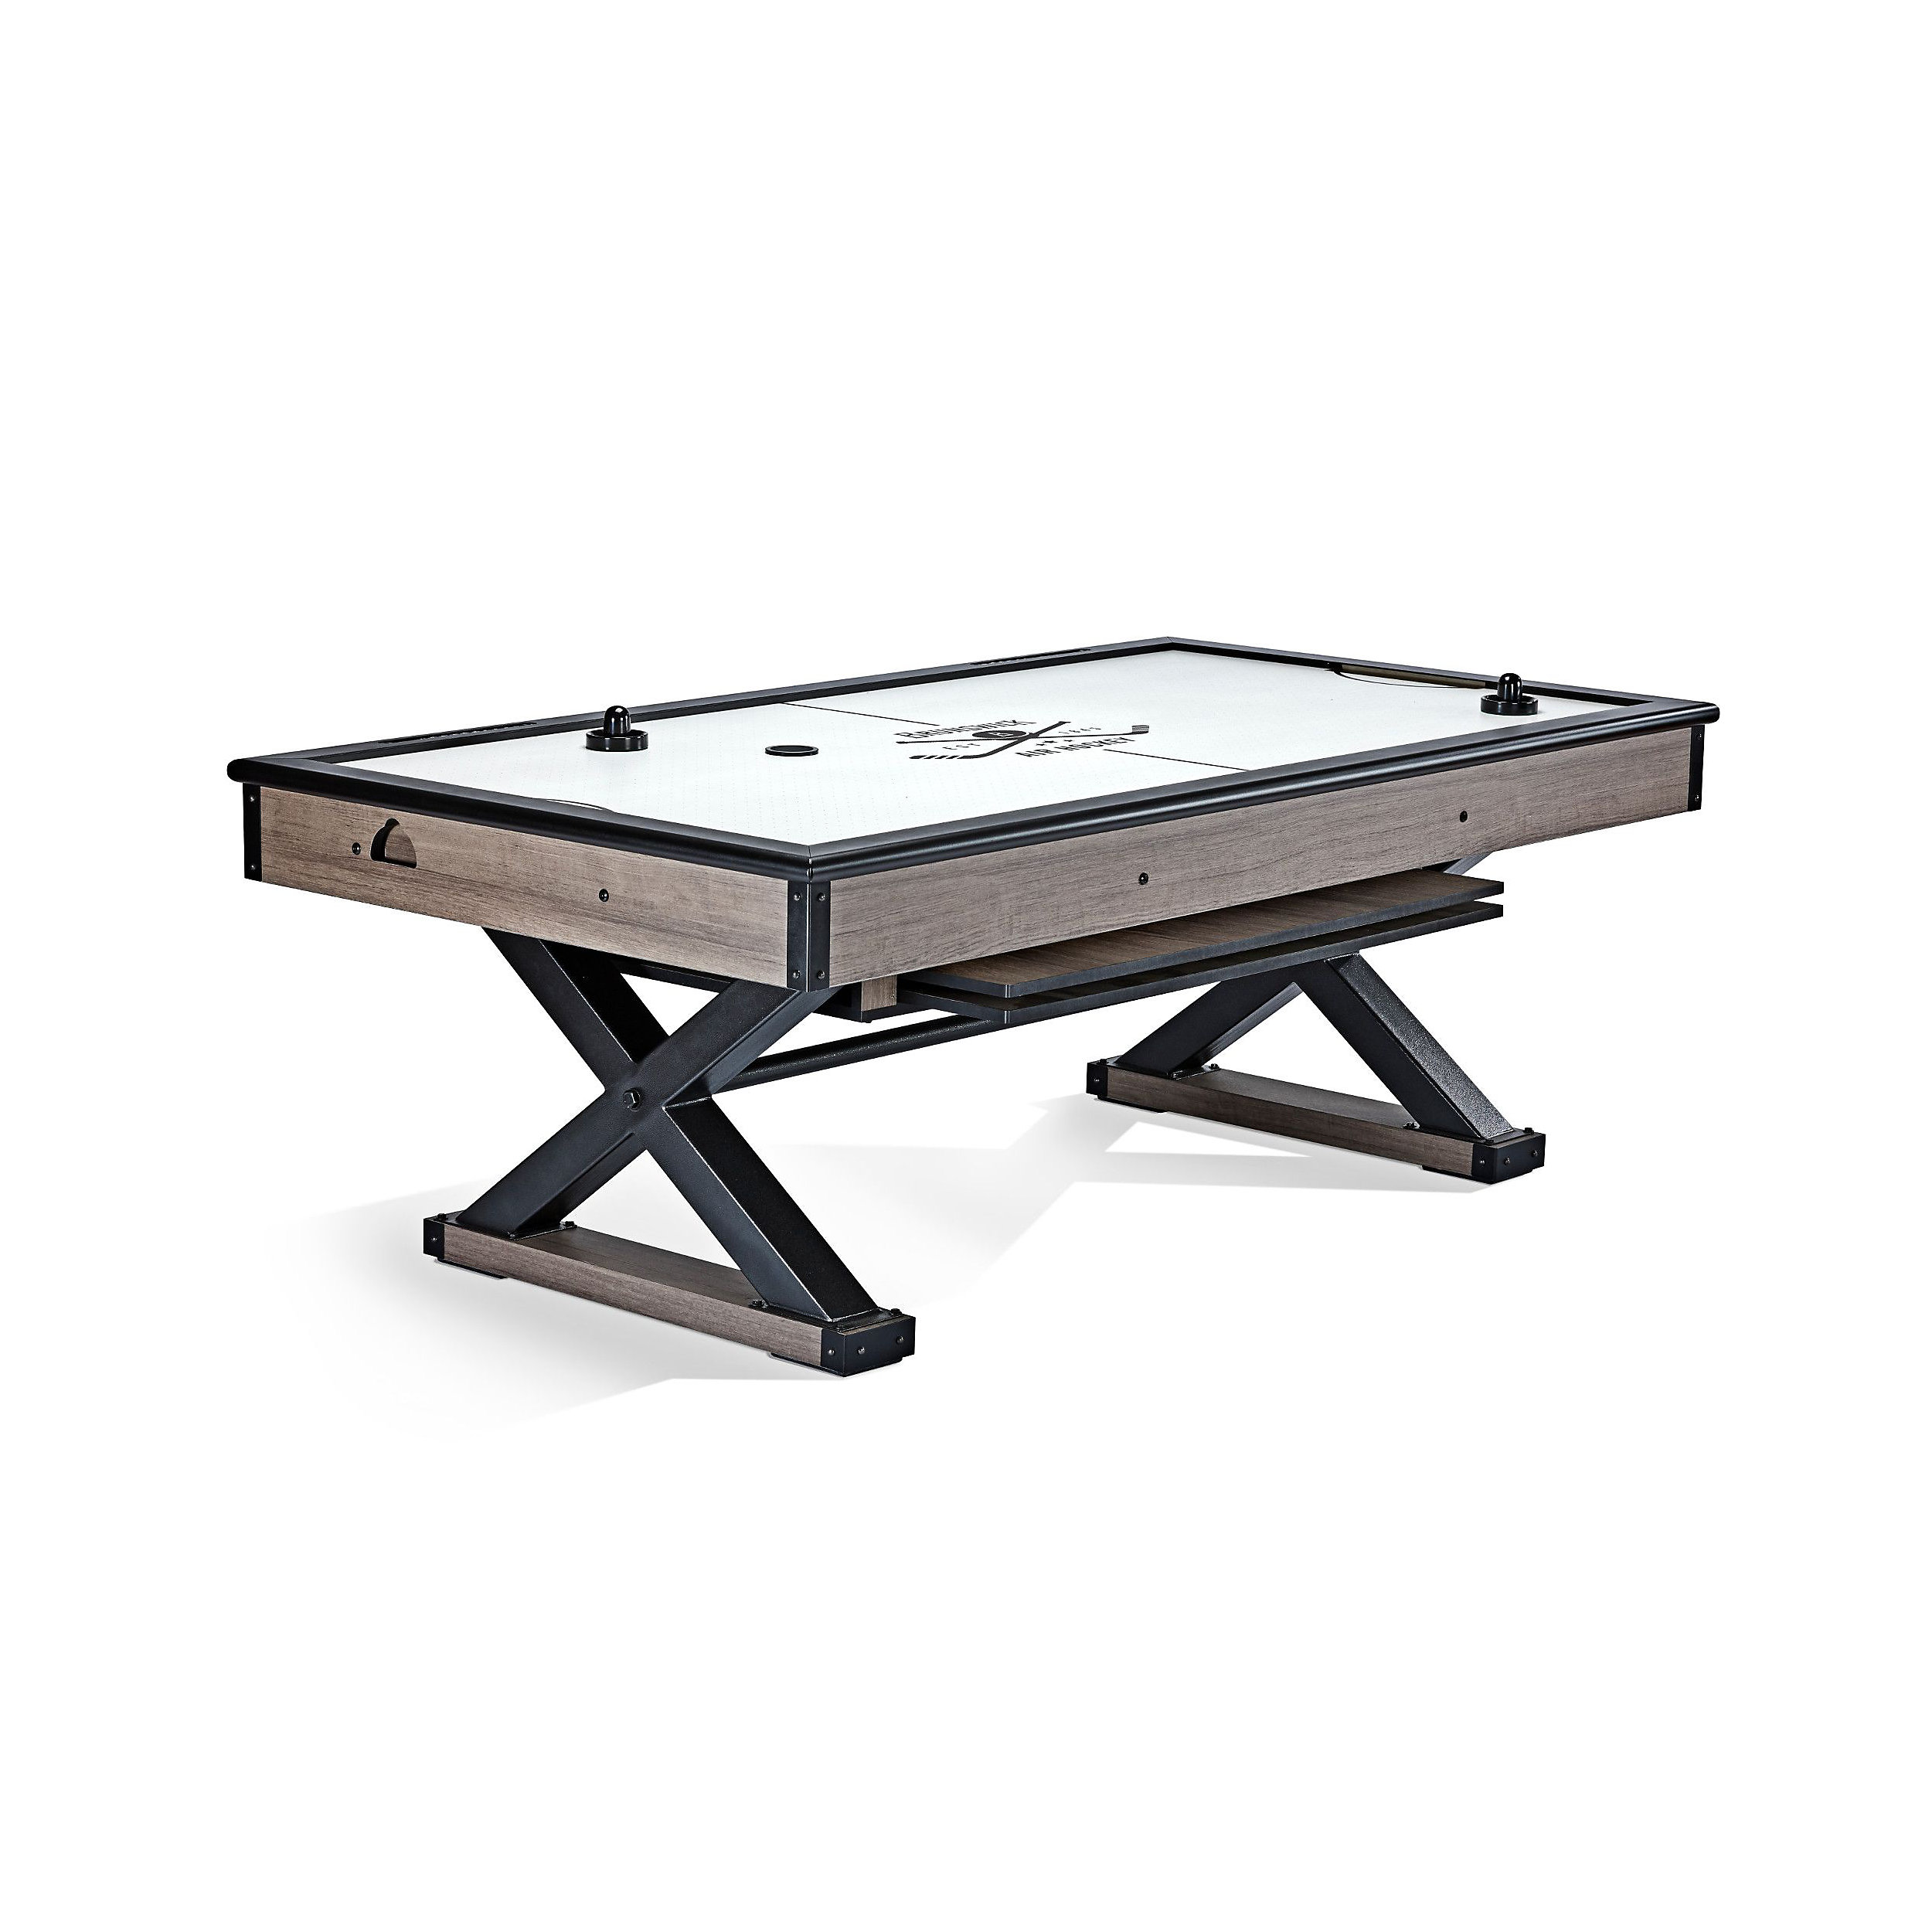 Marvelous Premiere Air Hockey Table Air Hockey Dining Table Download Free Architecture Designs Lectubocepmadebymaigaardcom